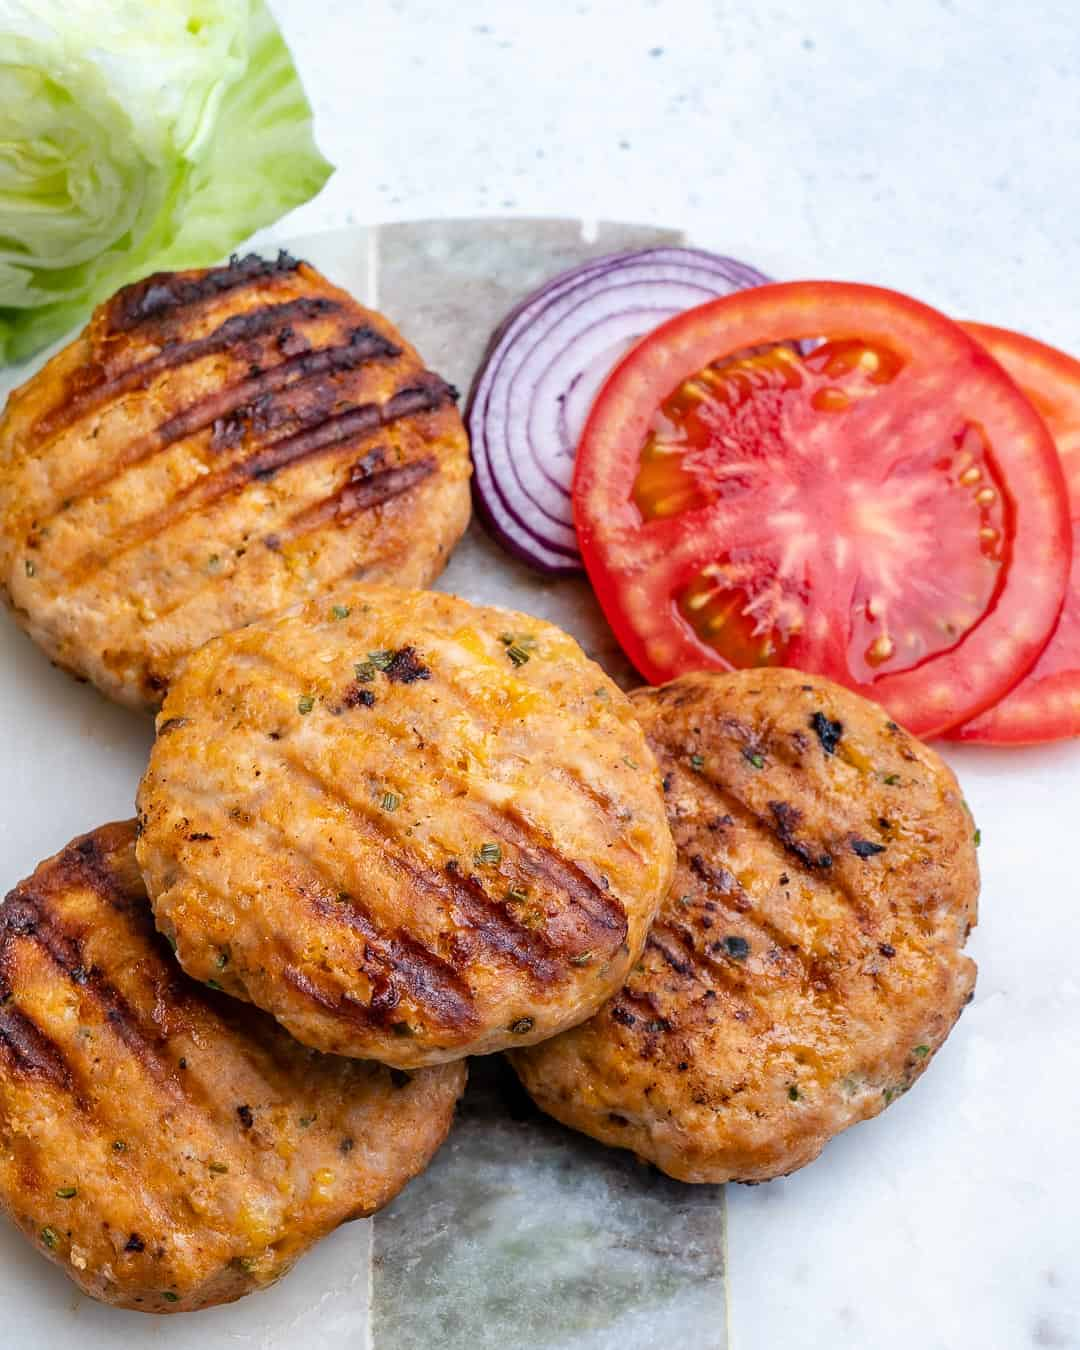 chicken burger patties on a cutting board with sliced tomatoes and onions on the side